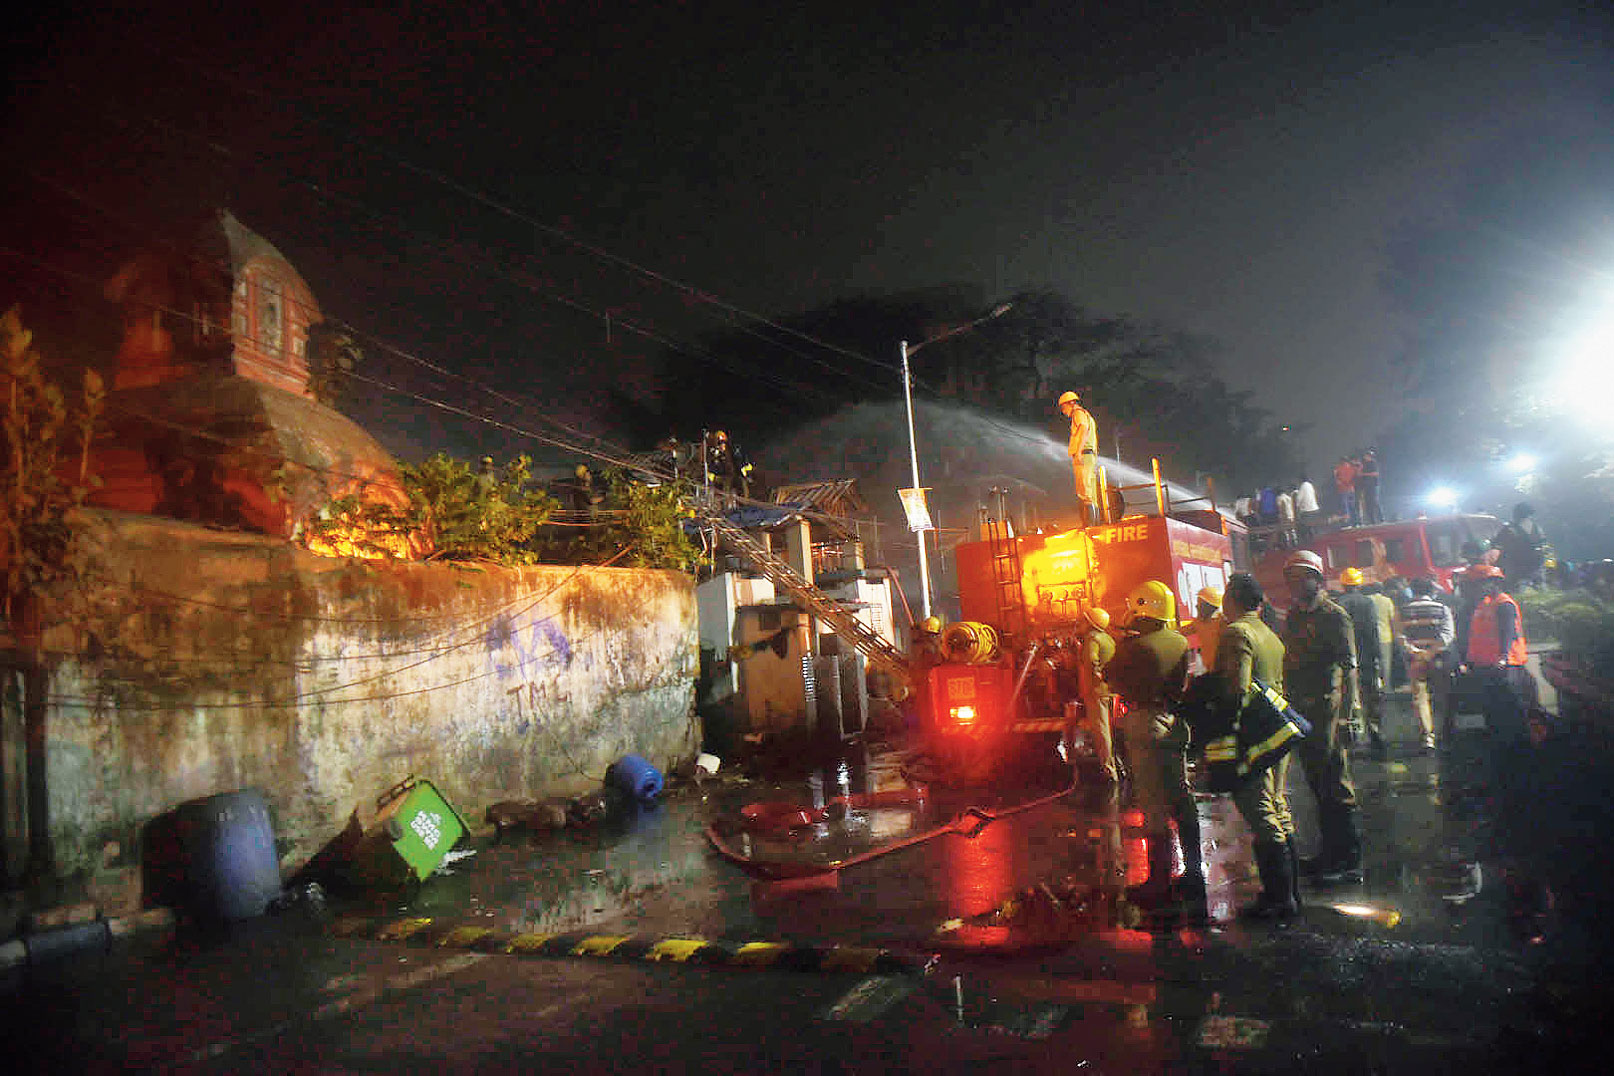 Fire-fighters douse the blaze on Wednesday evening.